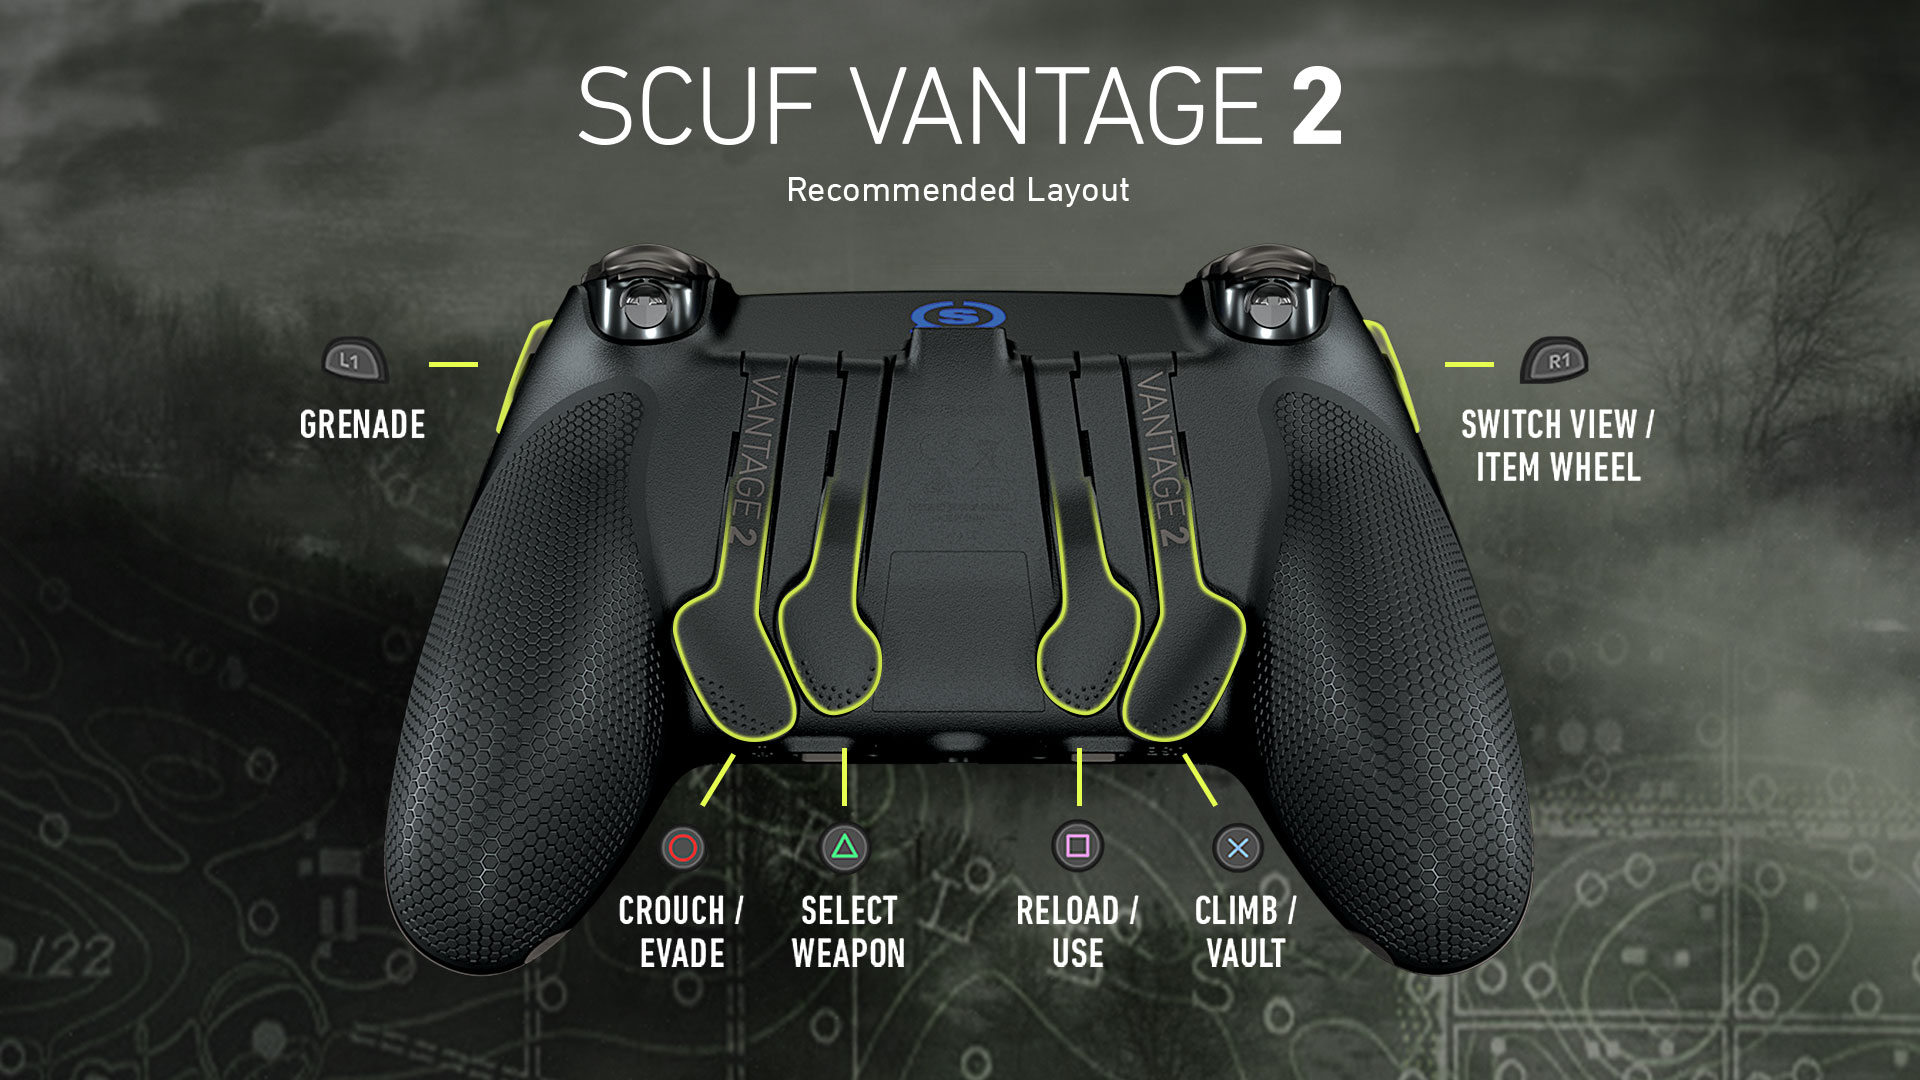 SCUF Vantage 2 Ghost Recon Breakpoint Controller Configuration